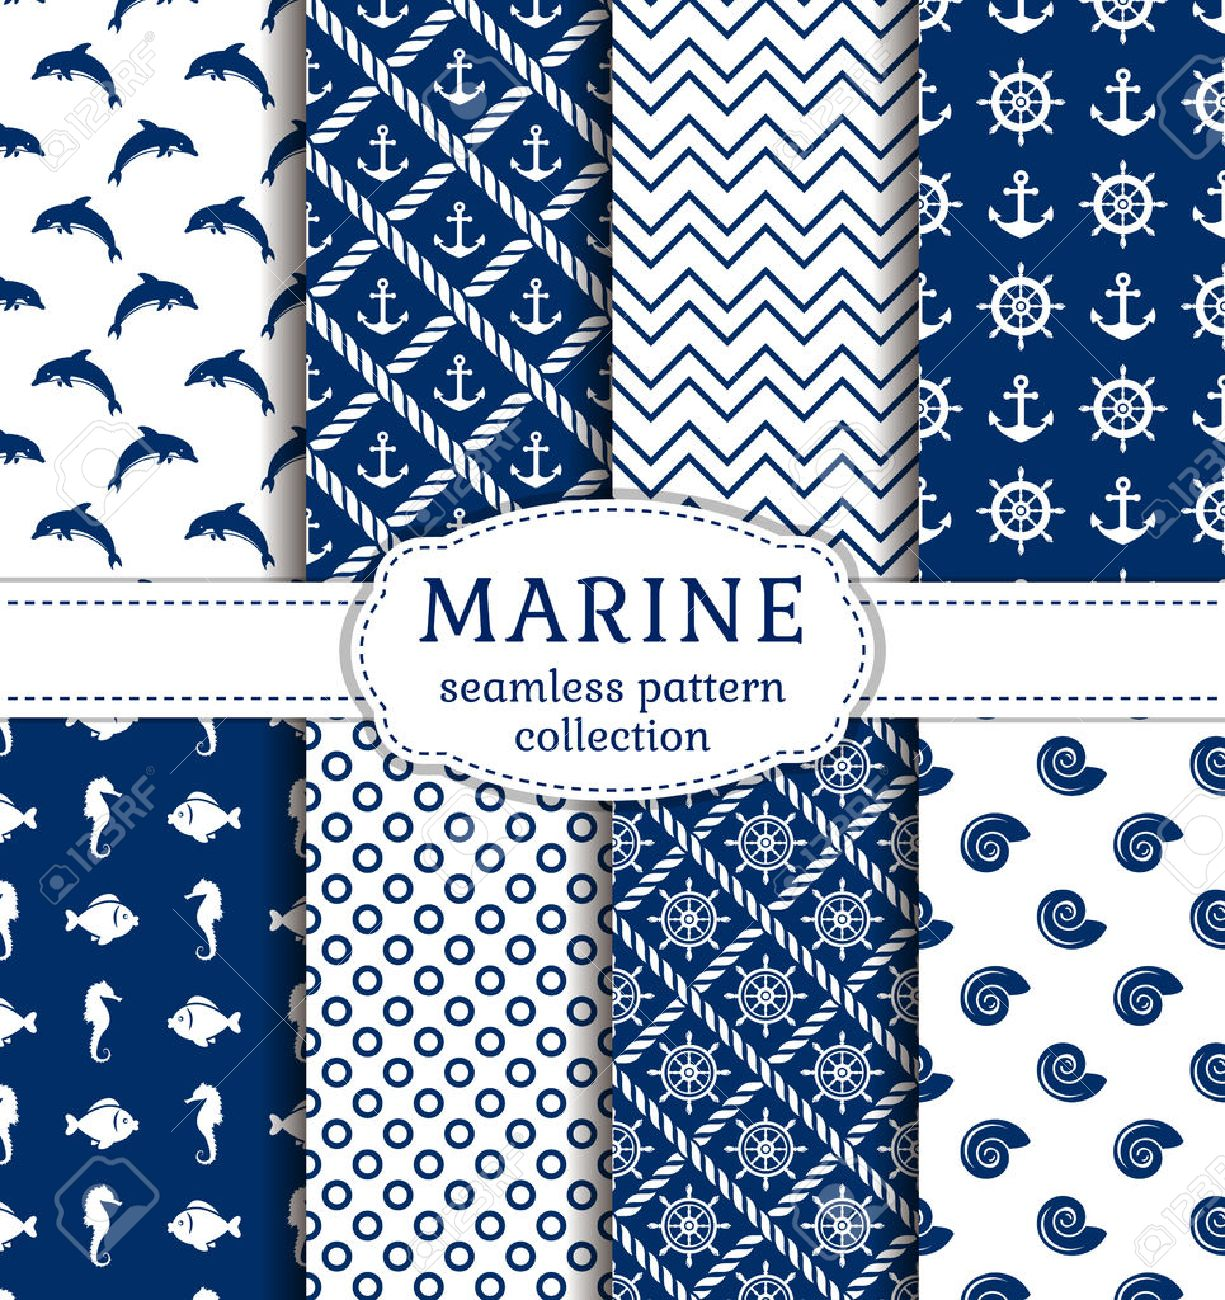 Set of sea and nautical backgrounds in navy blue and white colors. Sea theme. Seamless patterns collection. Vector illustration. - 53553952